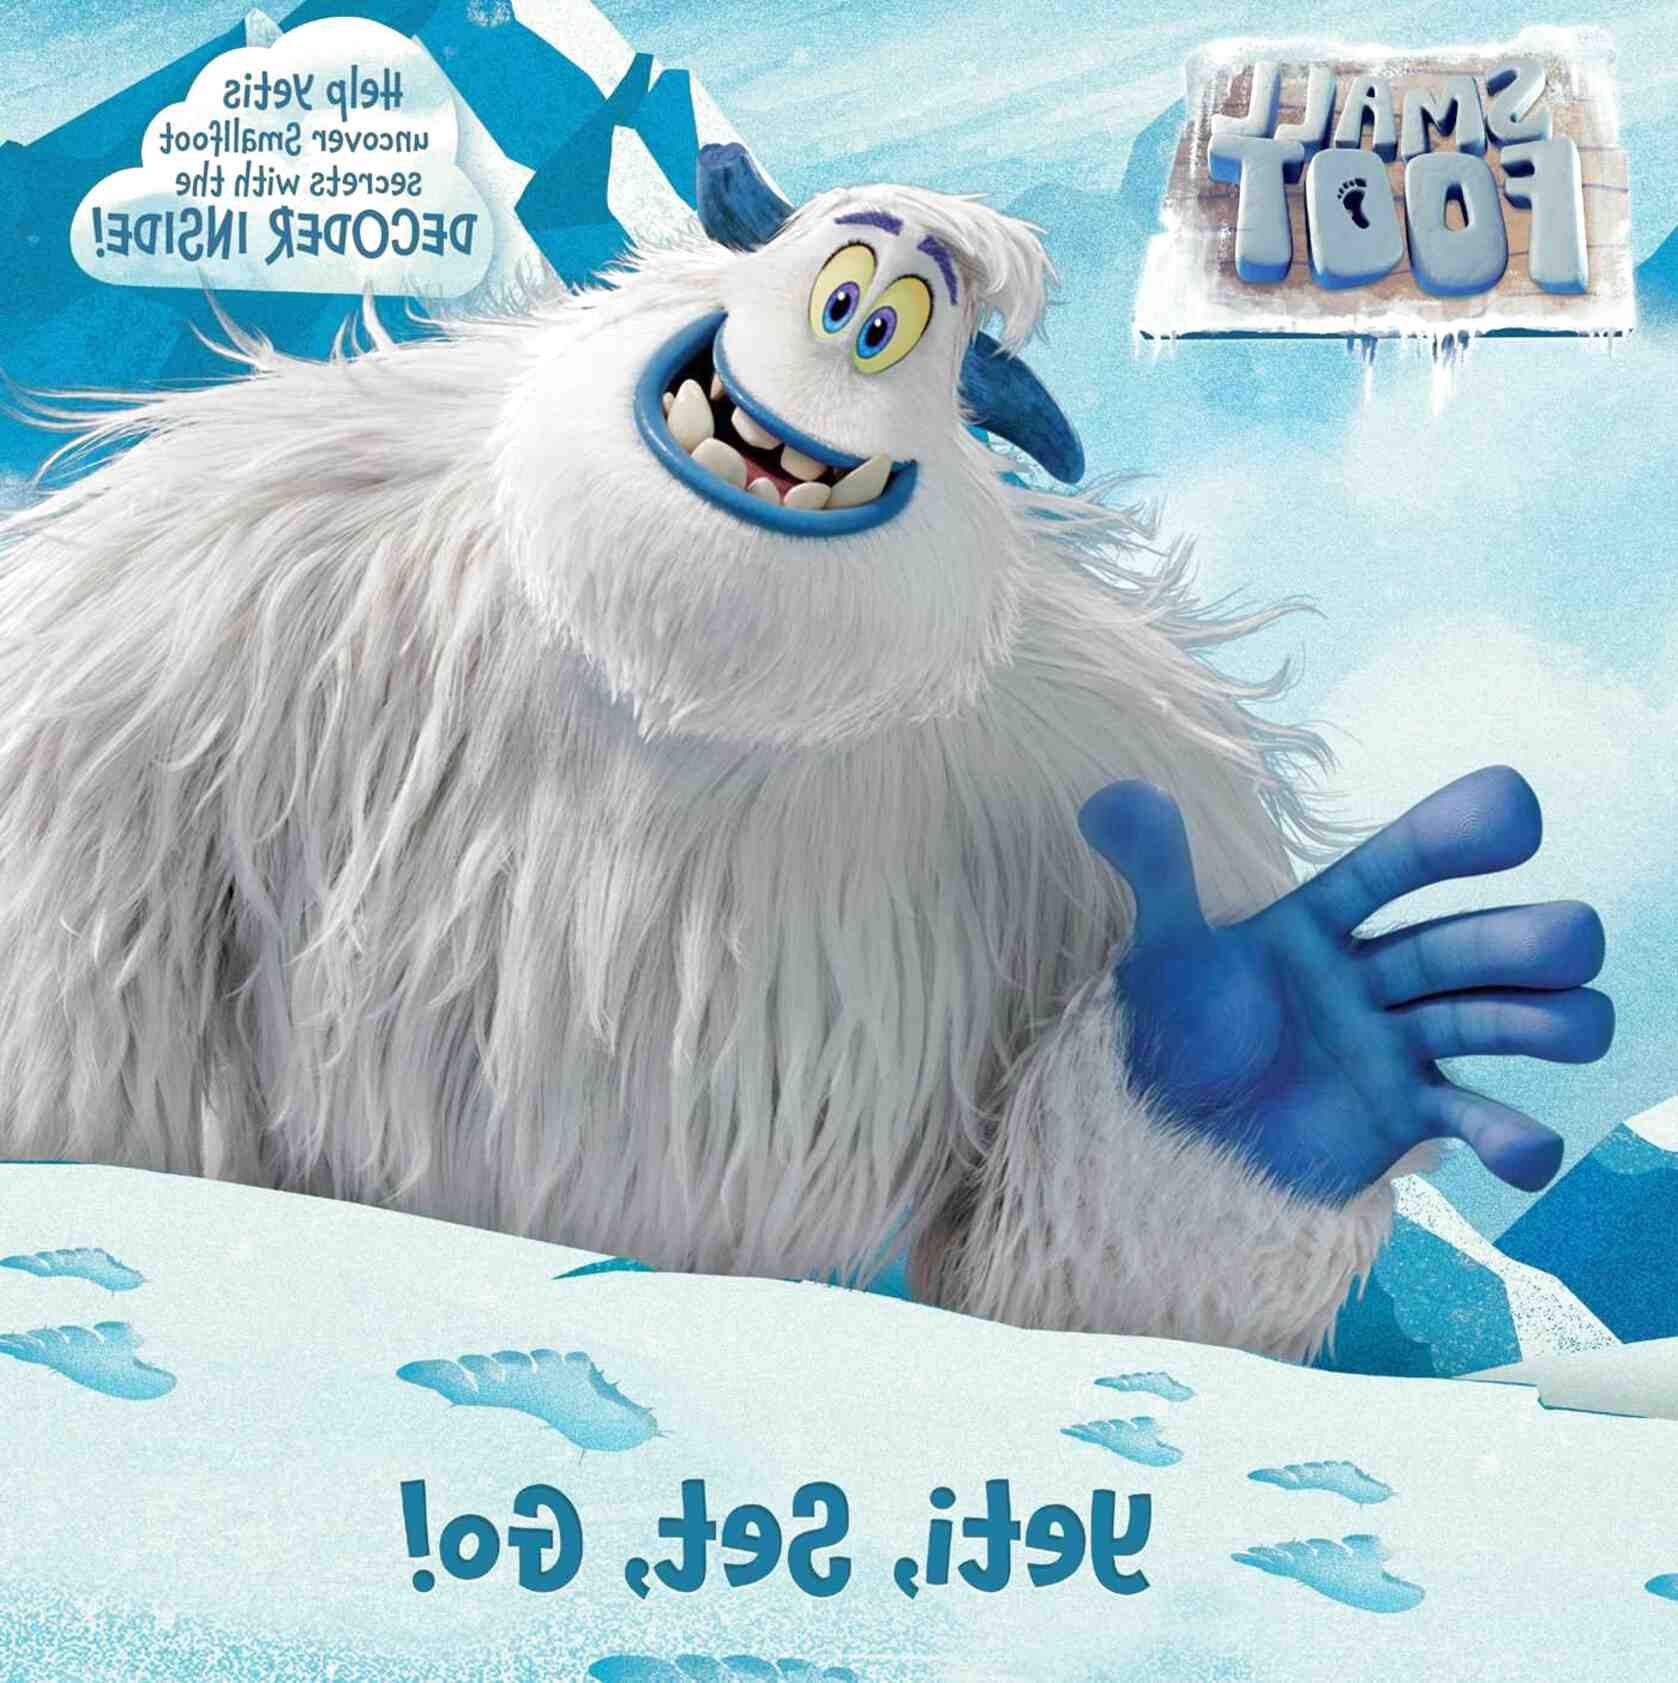 yeti for sale